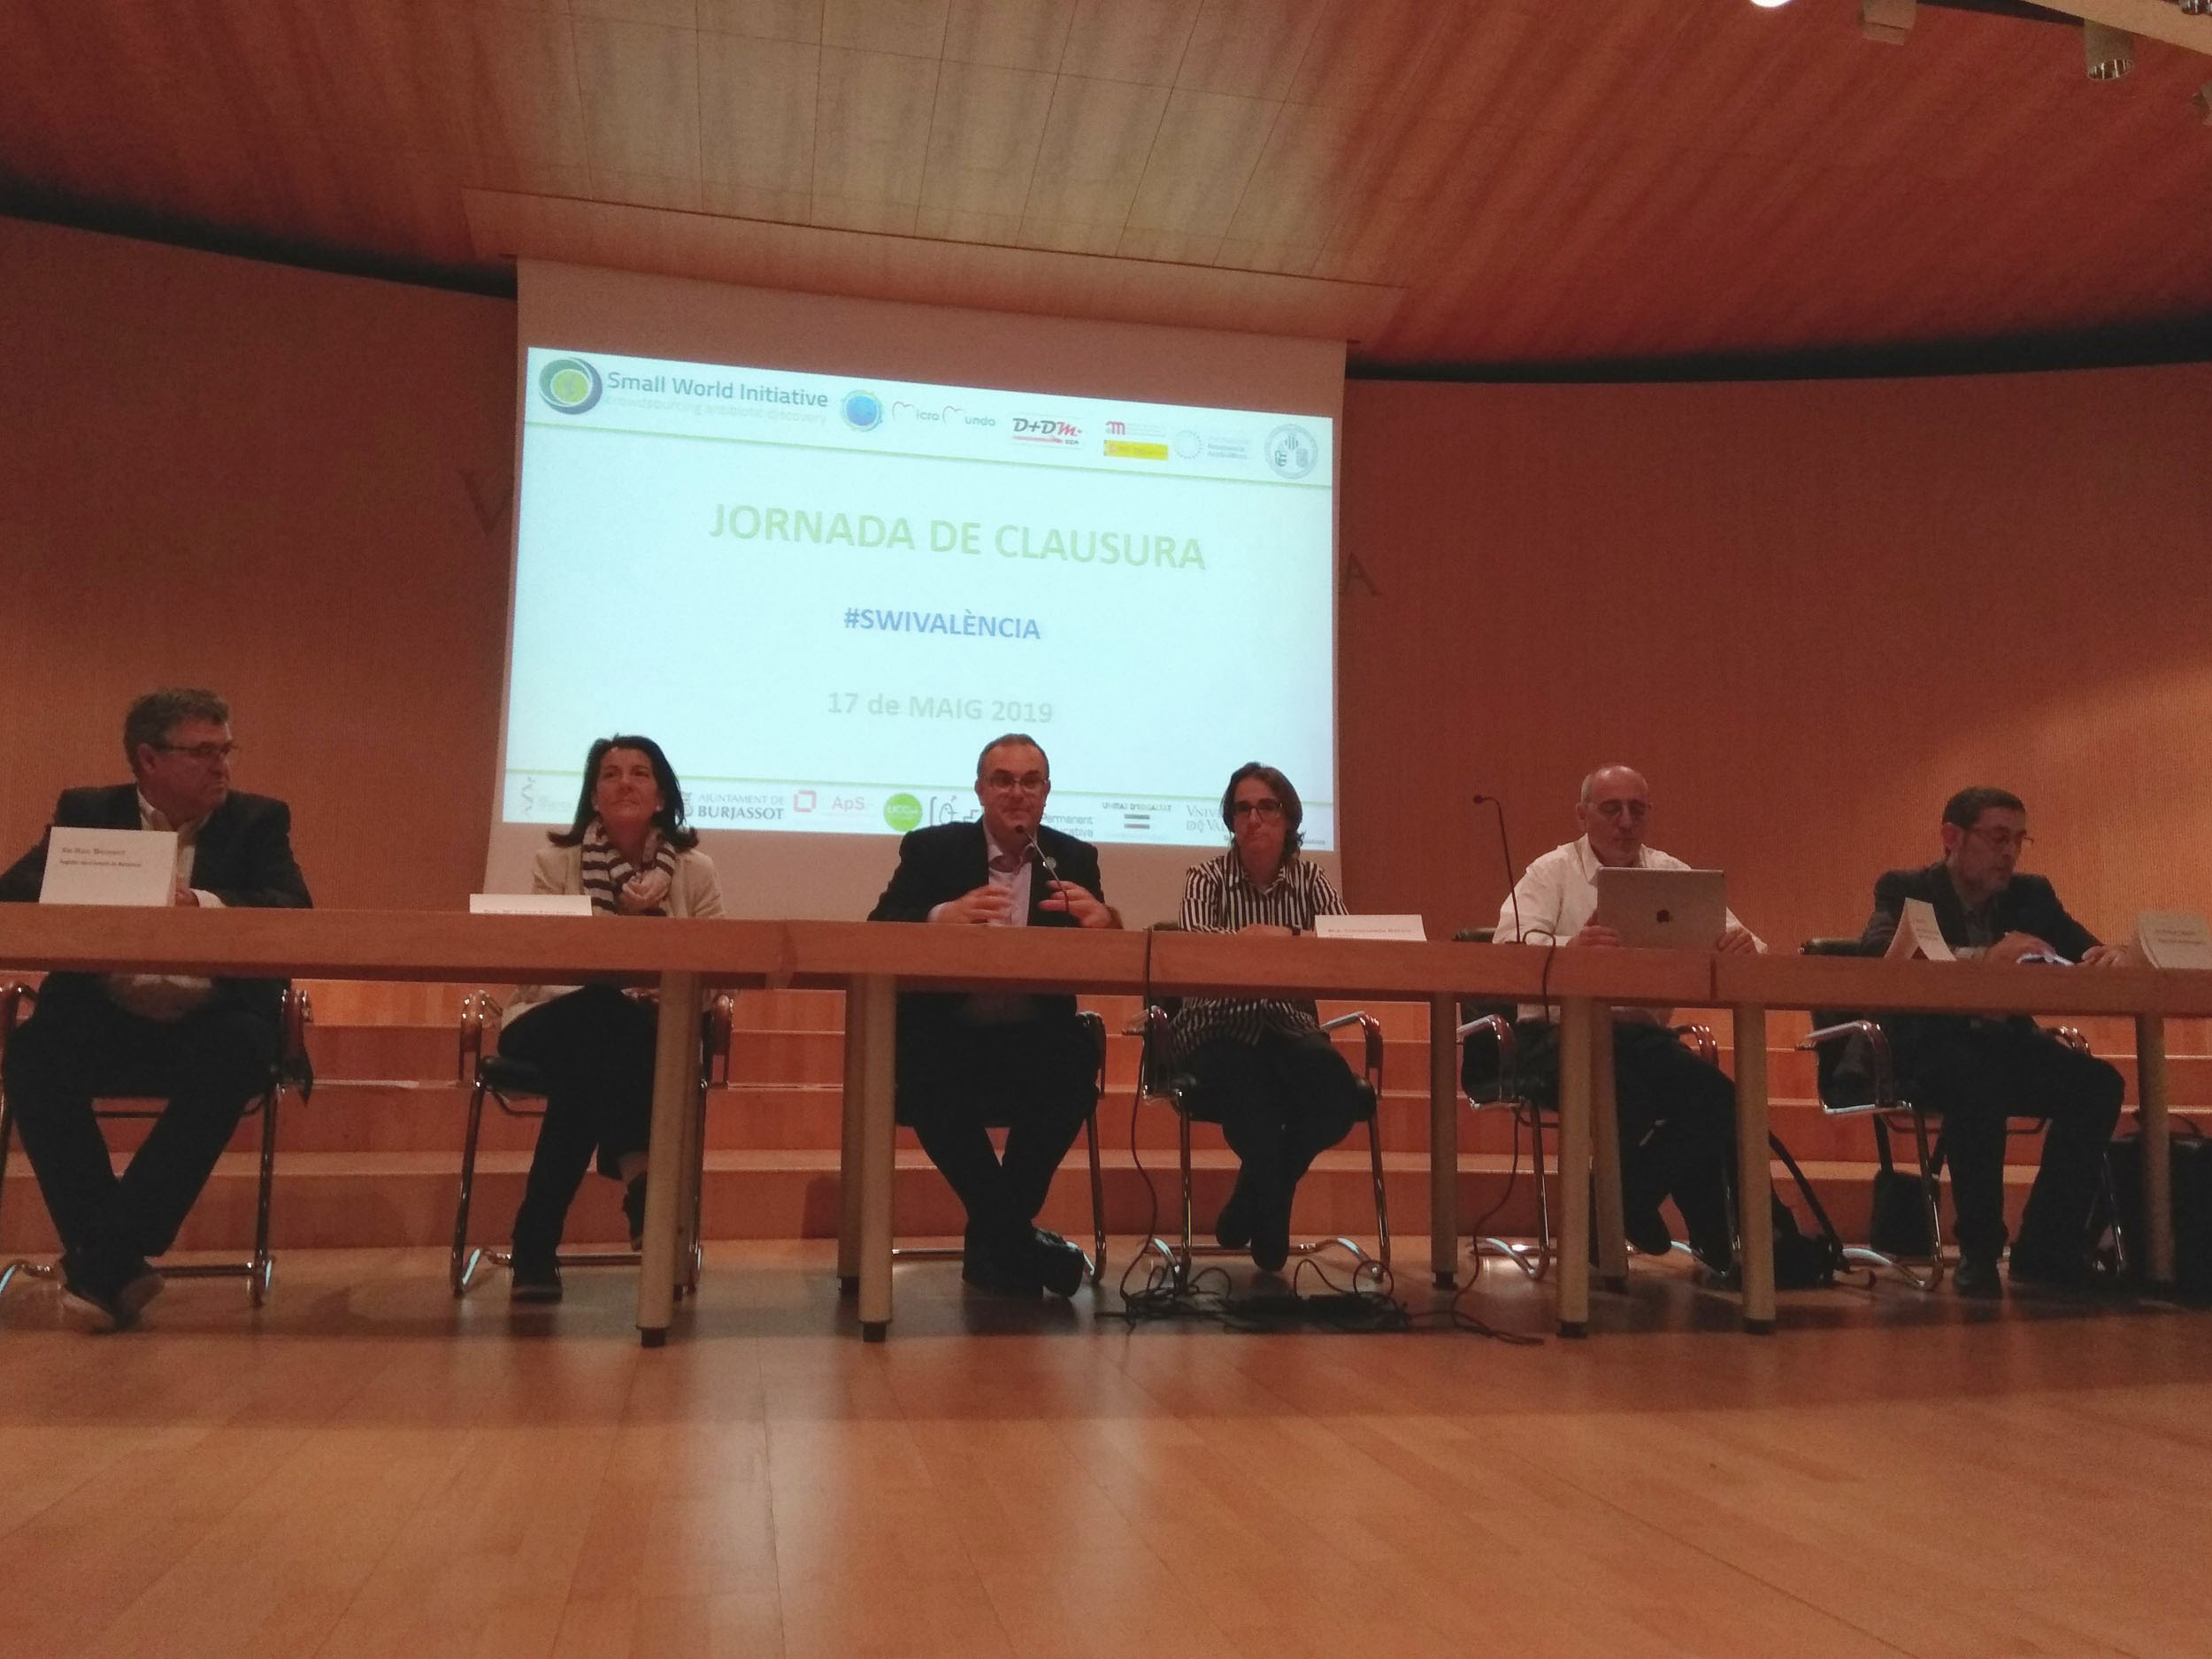 (From left to right). Roc Senent, María Luisa Ferrándiz, Sergi Maicas, Inmaculada García-Robles, Ferran Suay and Rafael Castelló.